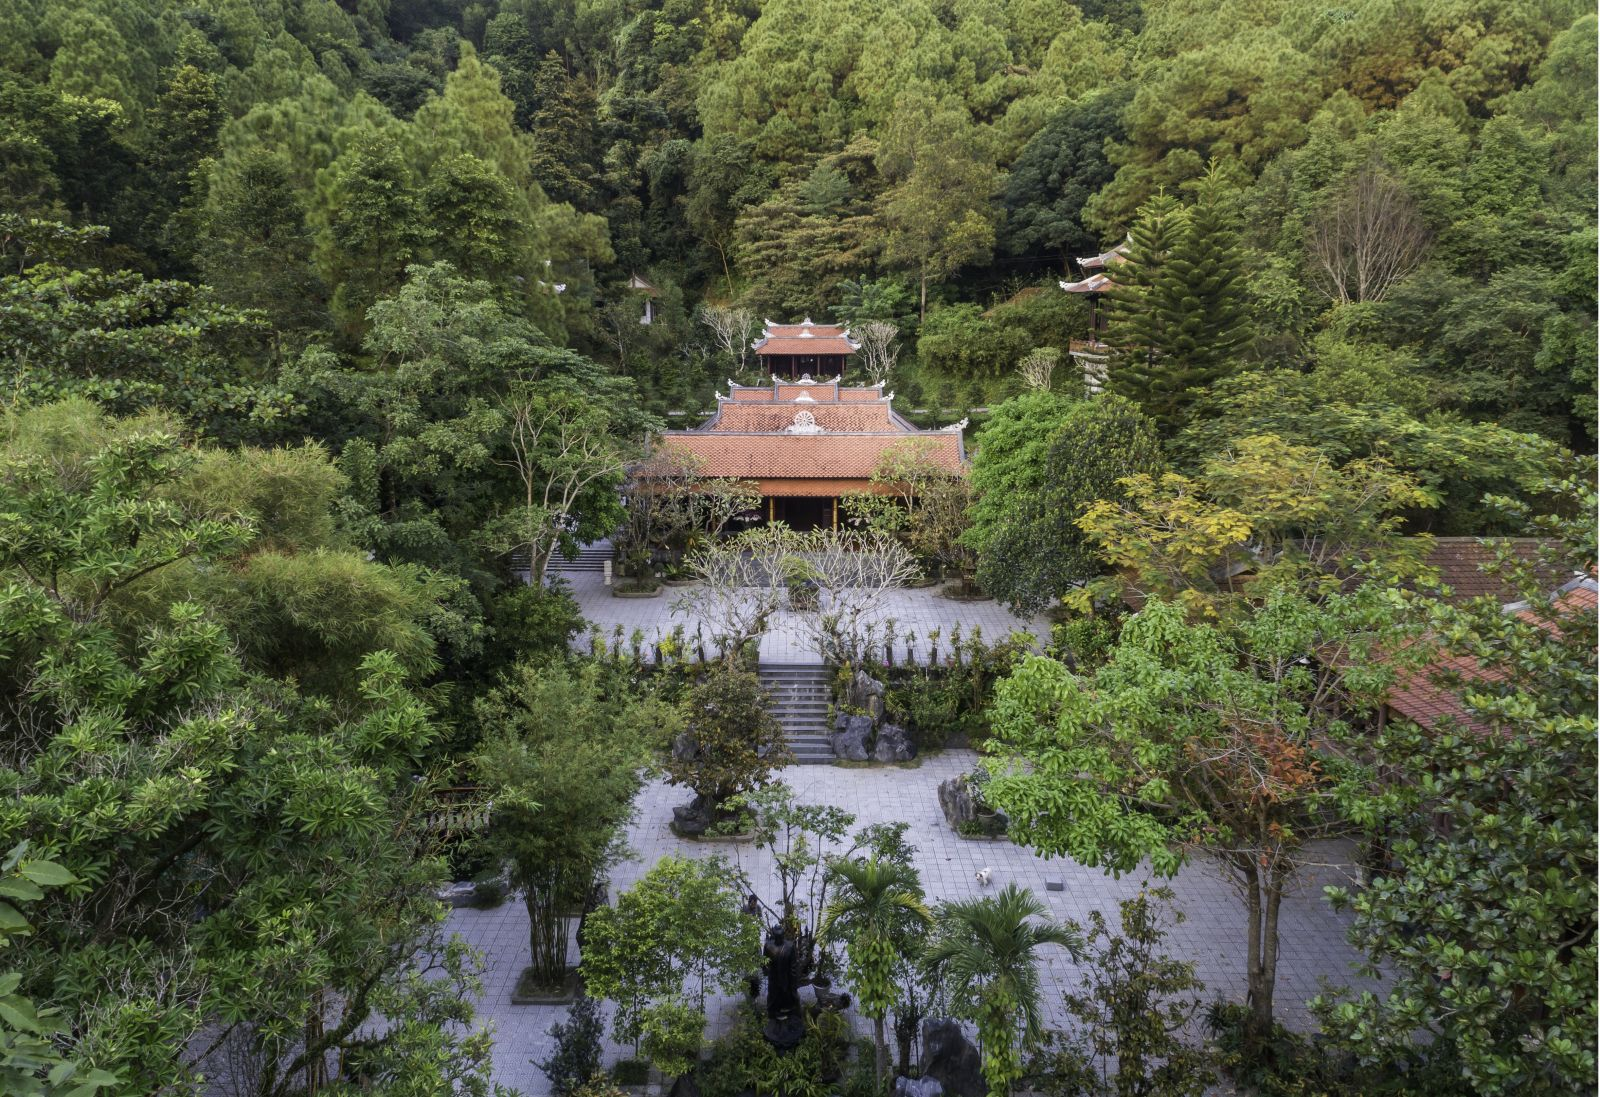 Panoramic view of the pagoda from above